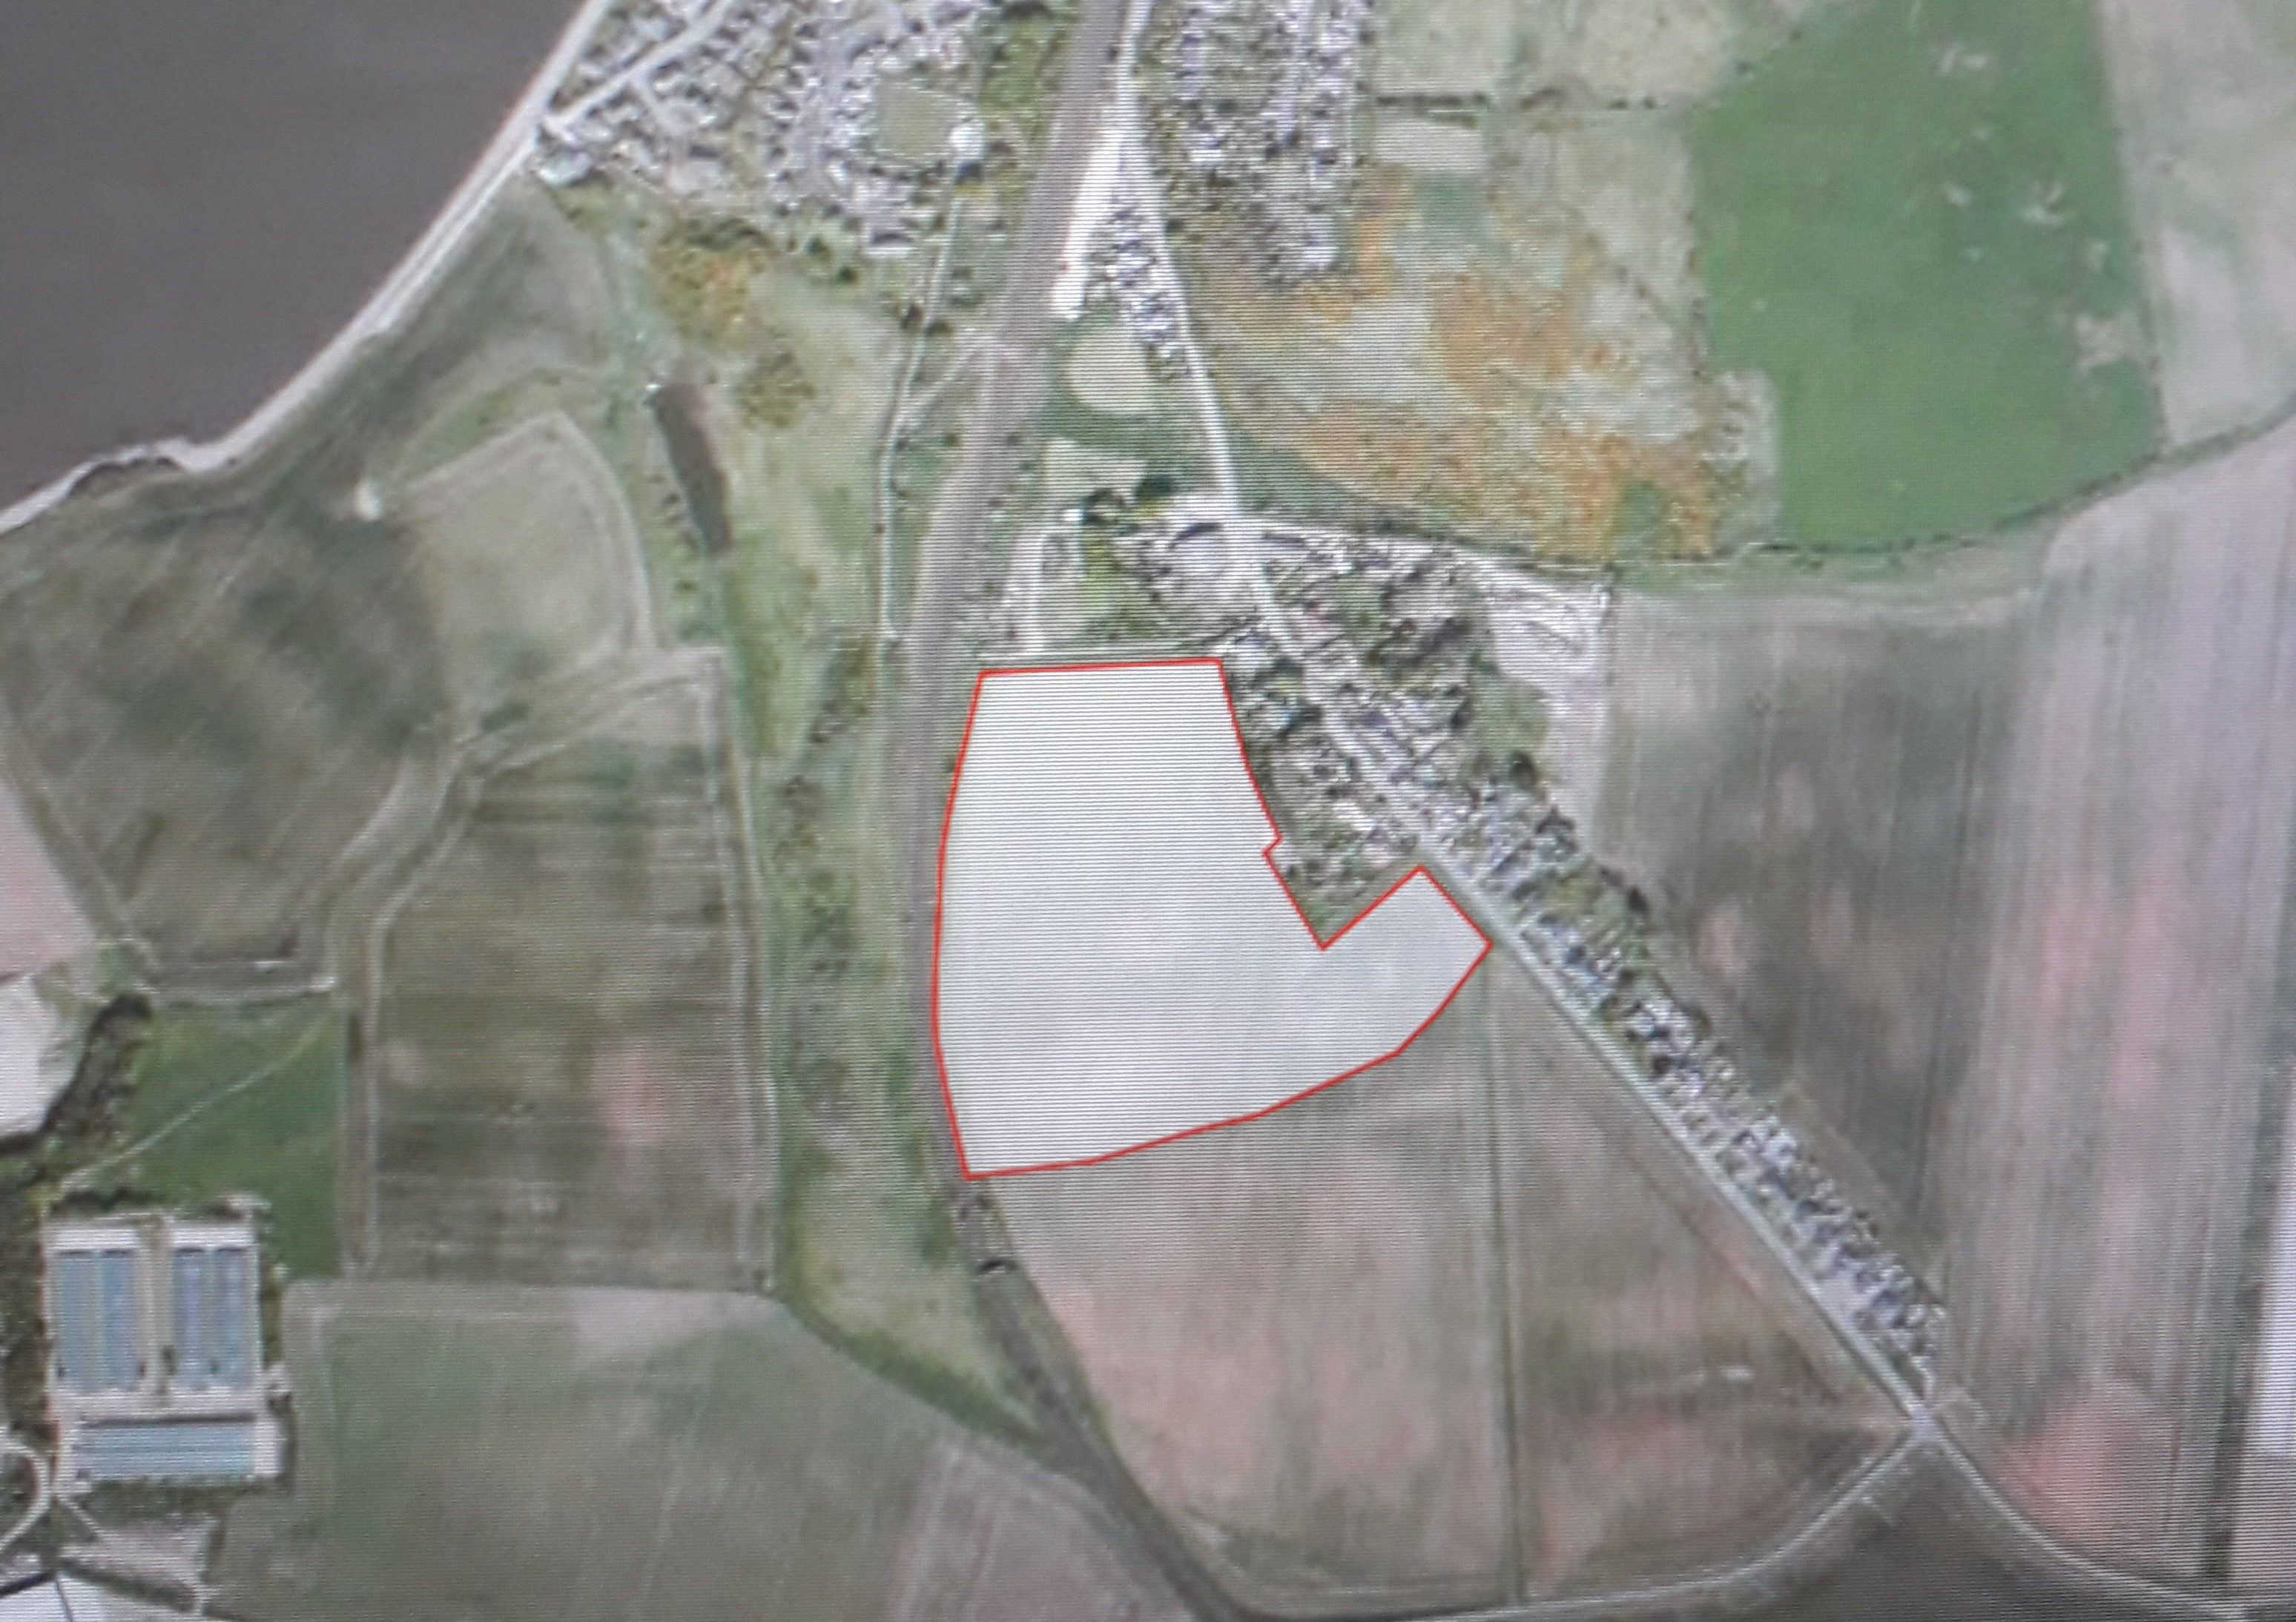 The proposed site of the development in Wormit.